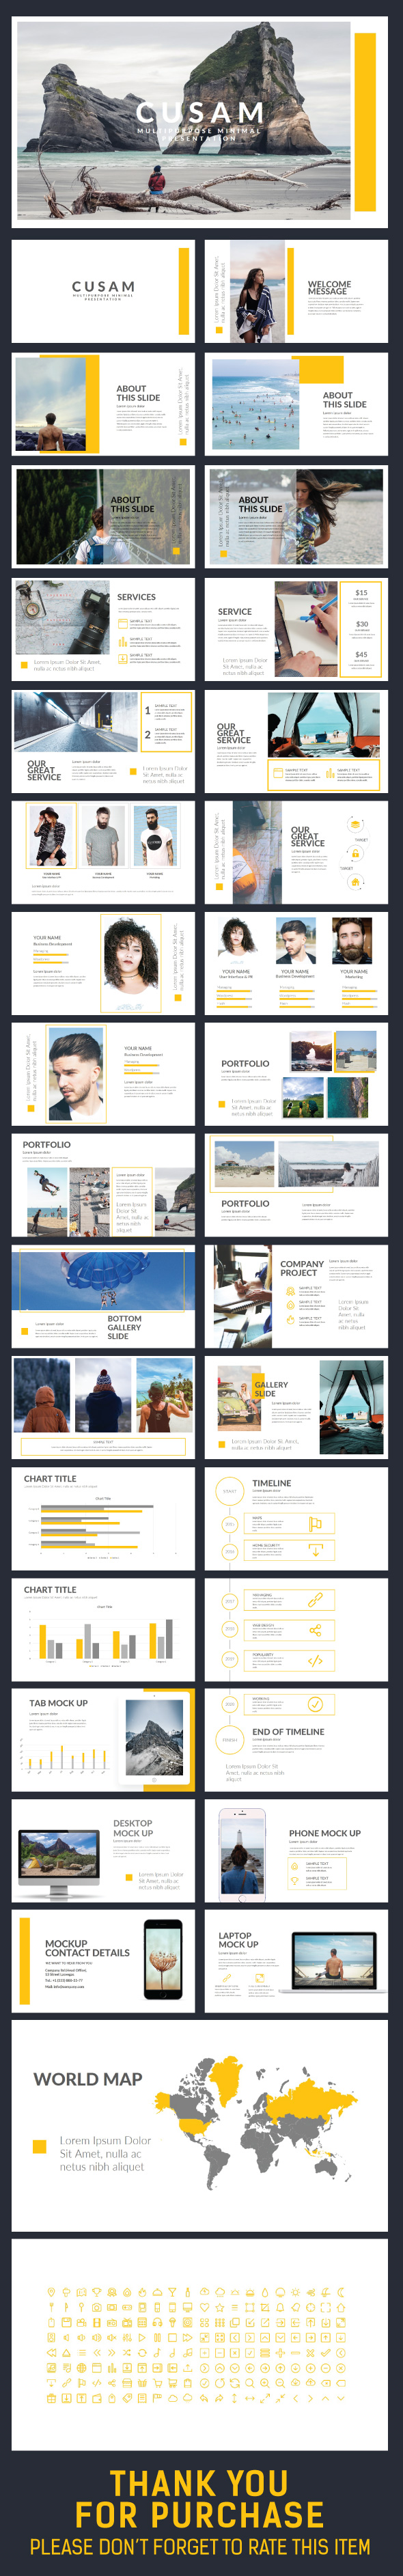 CUSAM Presentation Template - Creative PowerPoint Templates